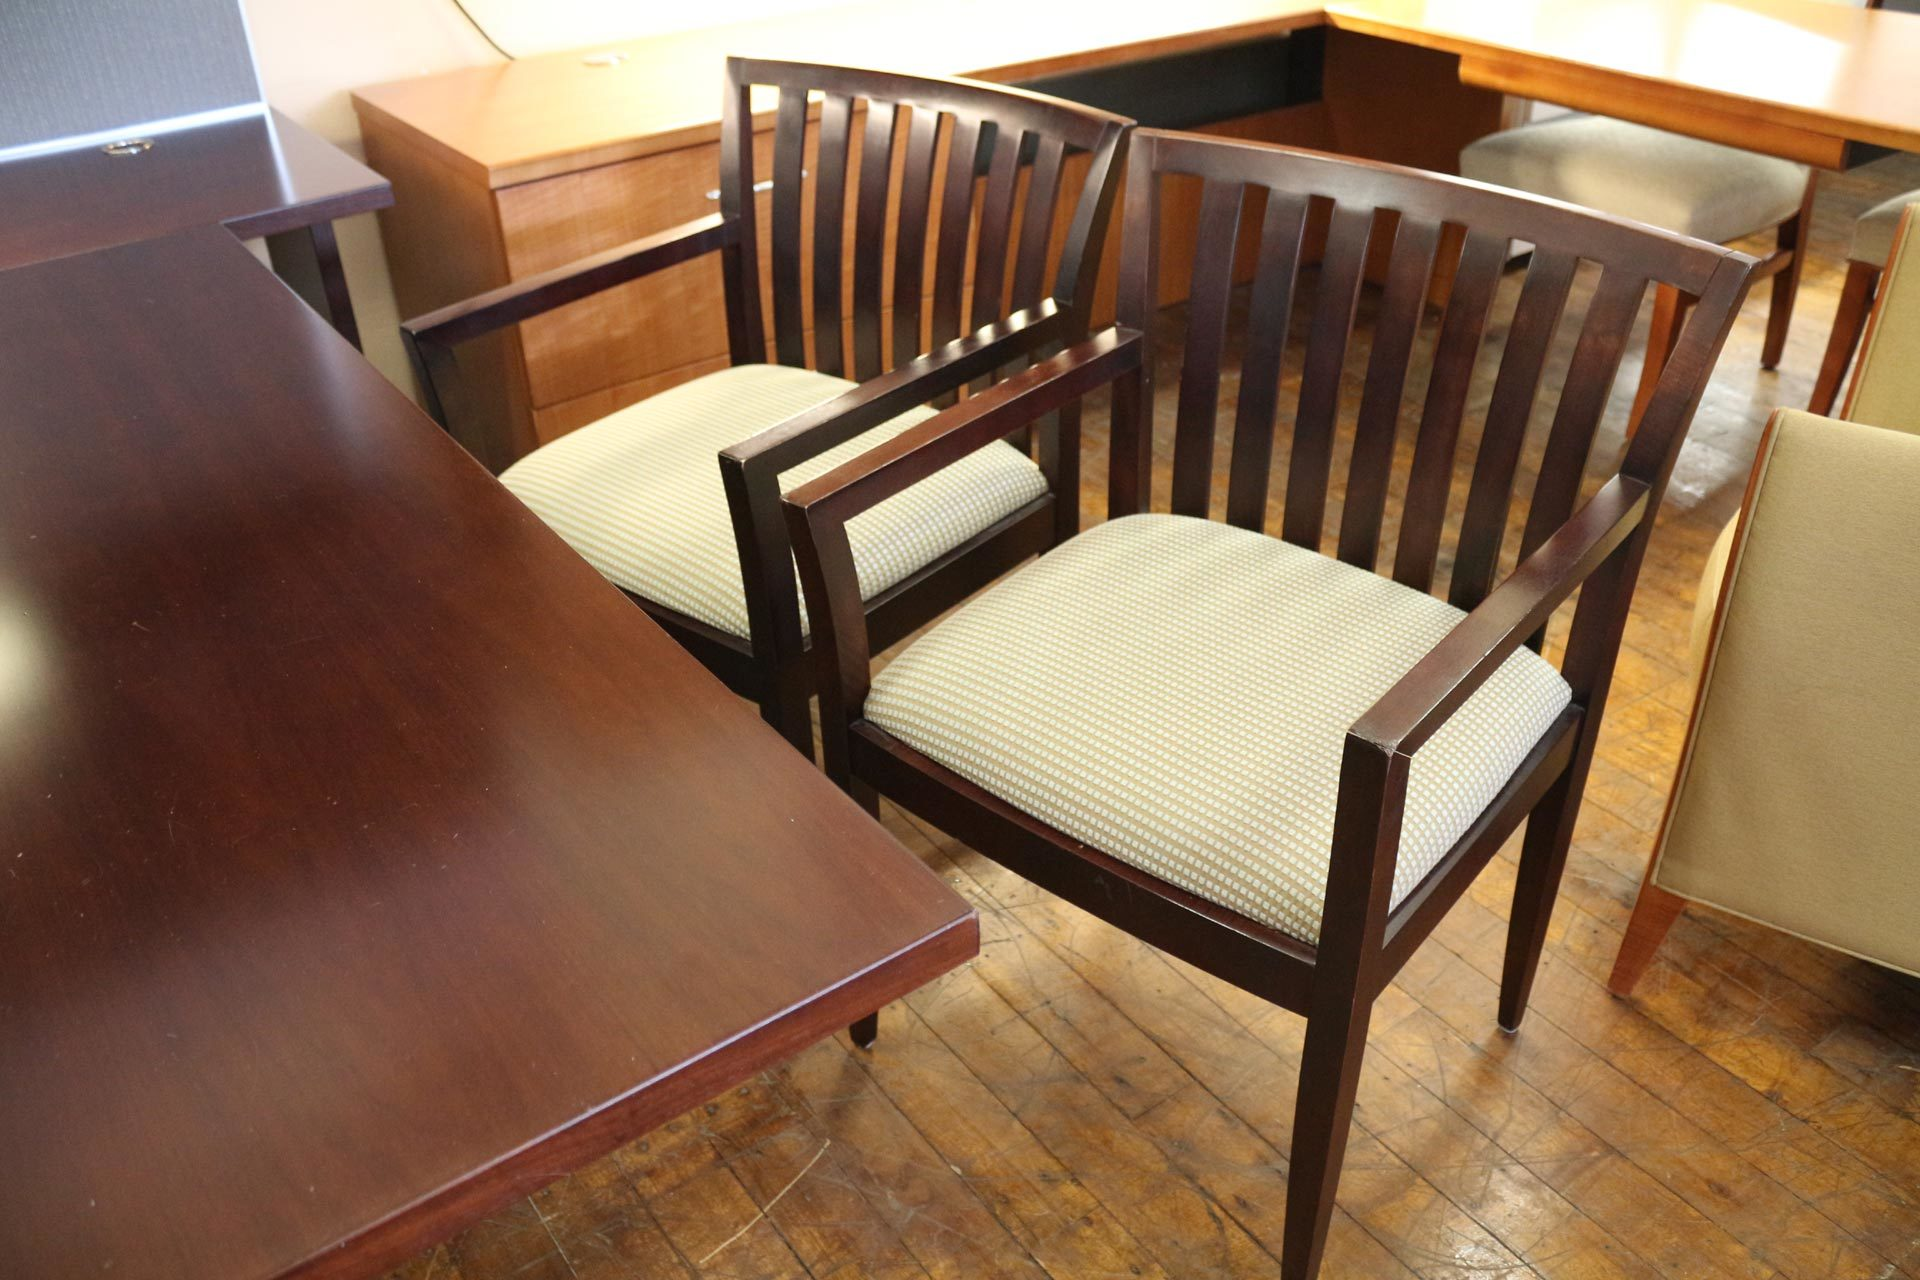 Used HBF Como espresso guest chairs with fabric seats